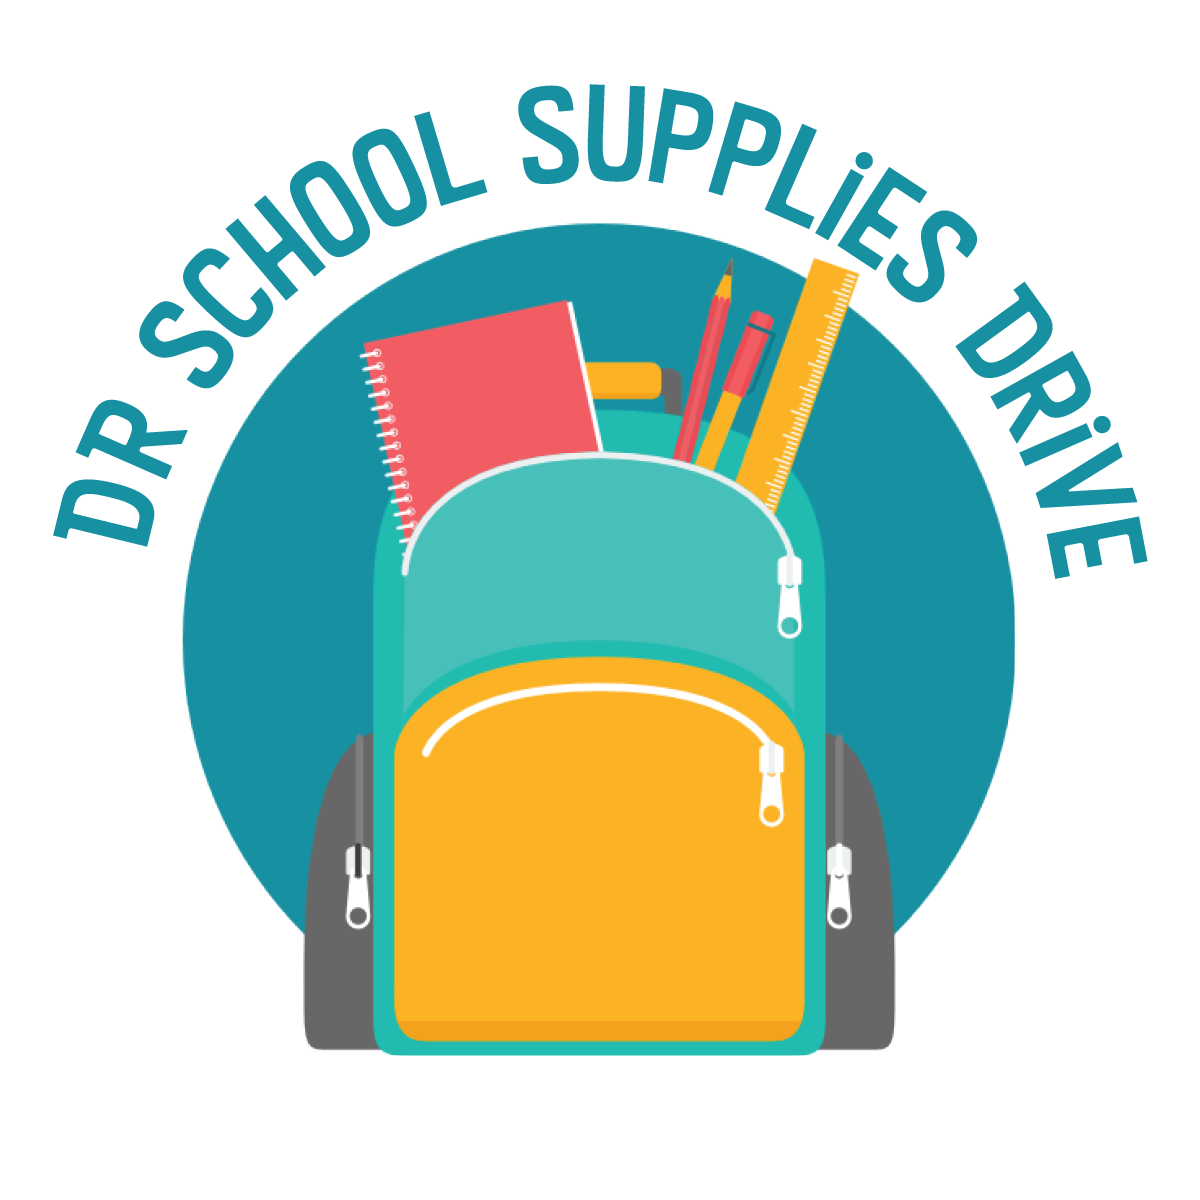 The Dominican Team is now collecting school supplies! - We will be taking donations of the items listed below over the next few weeks. Please drop off any NEW donations in the marked bin located in the Foyer by the info booth. You can also donate financially if that is preferred.Contact Byron if you have any questions: byron@friendshipcommunity.ca